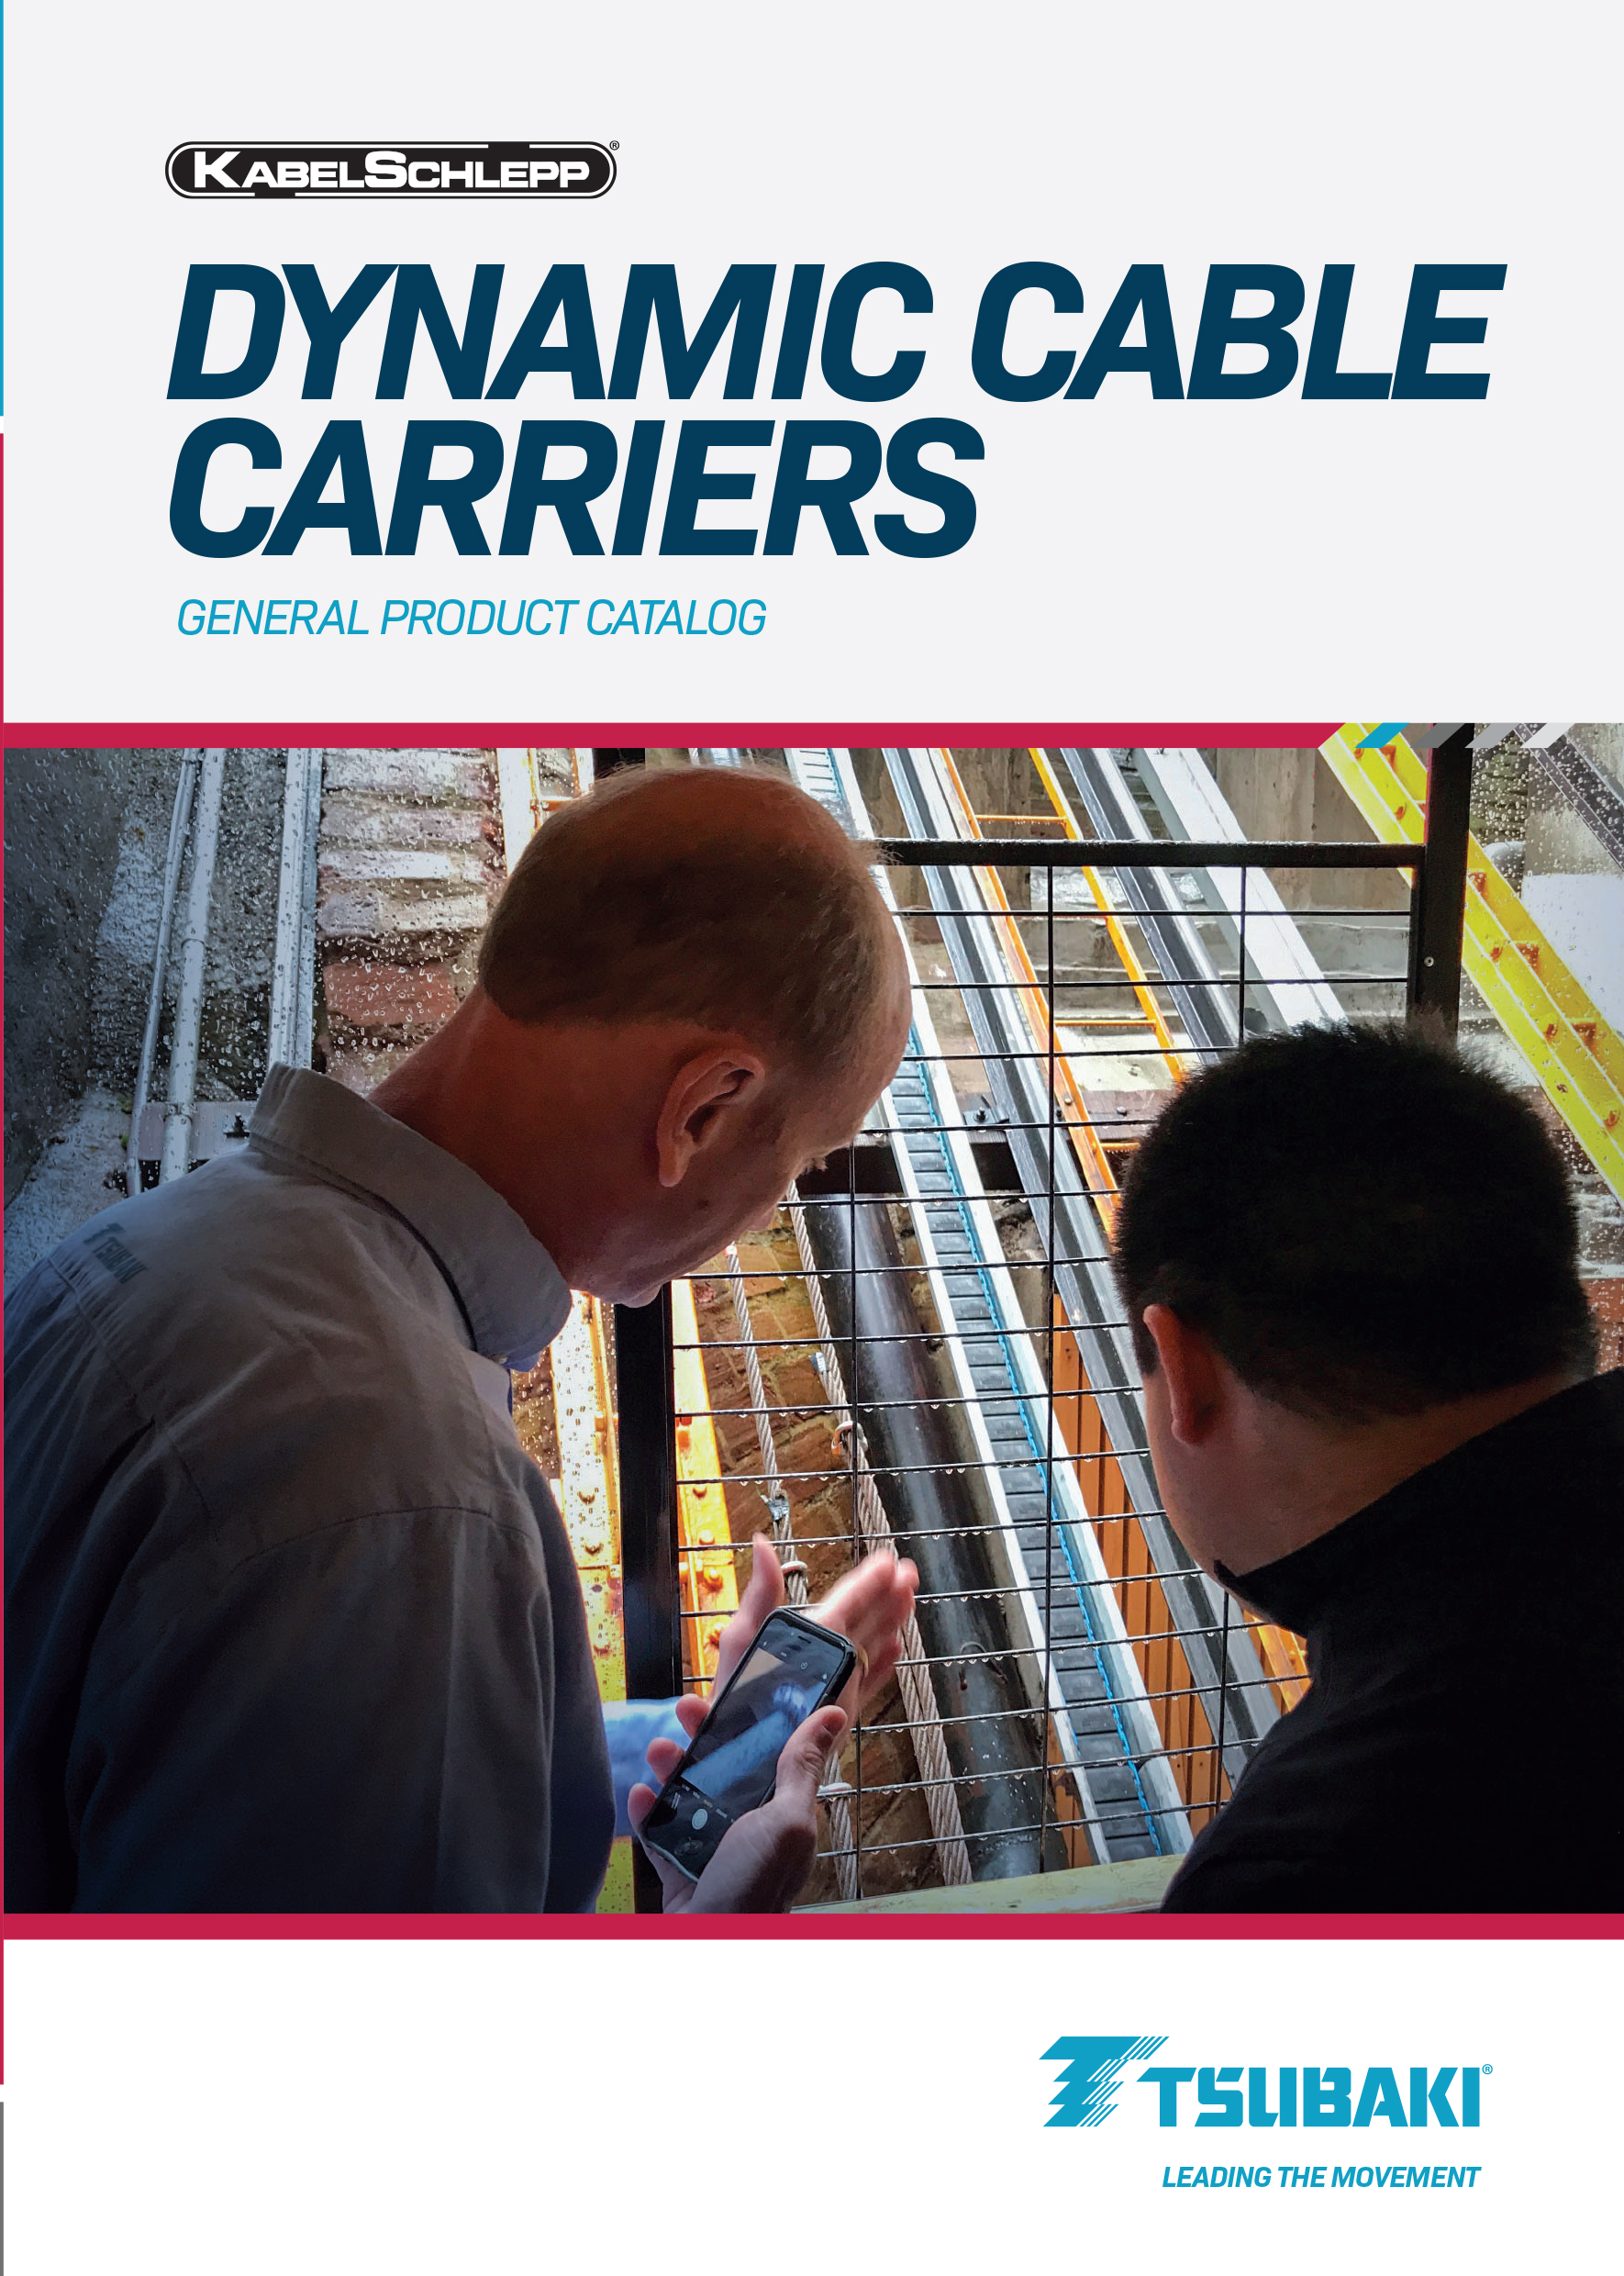 Dynamic Cable Carriers